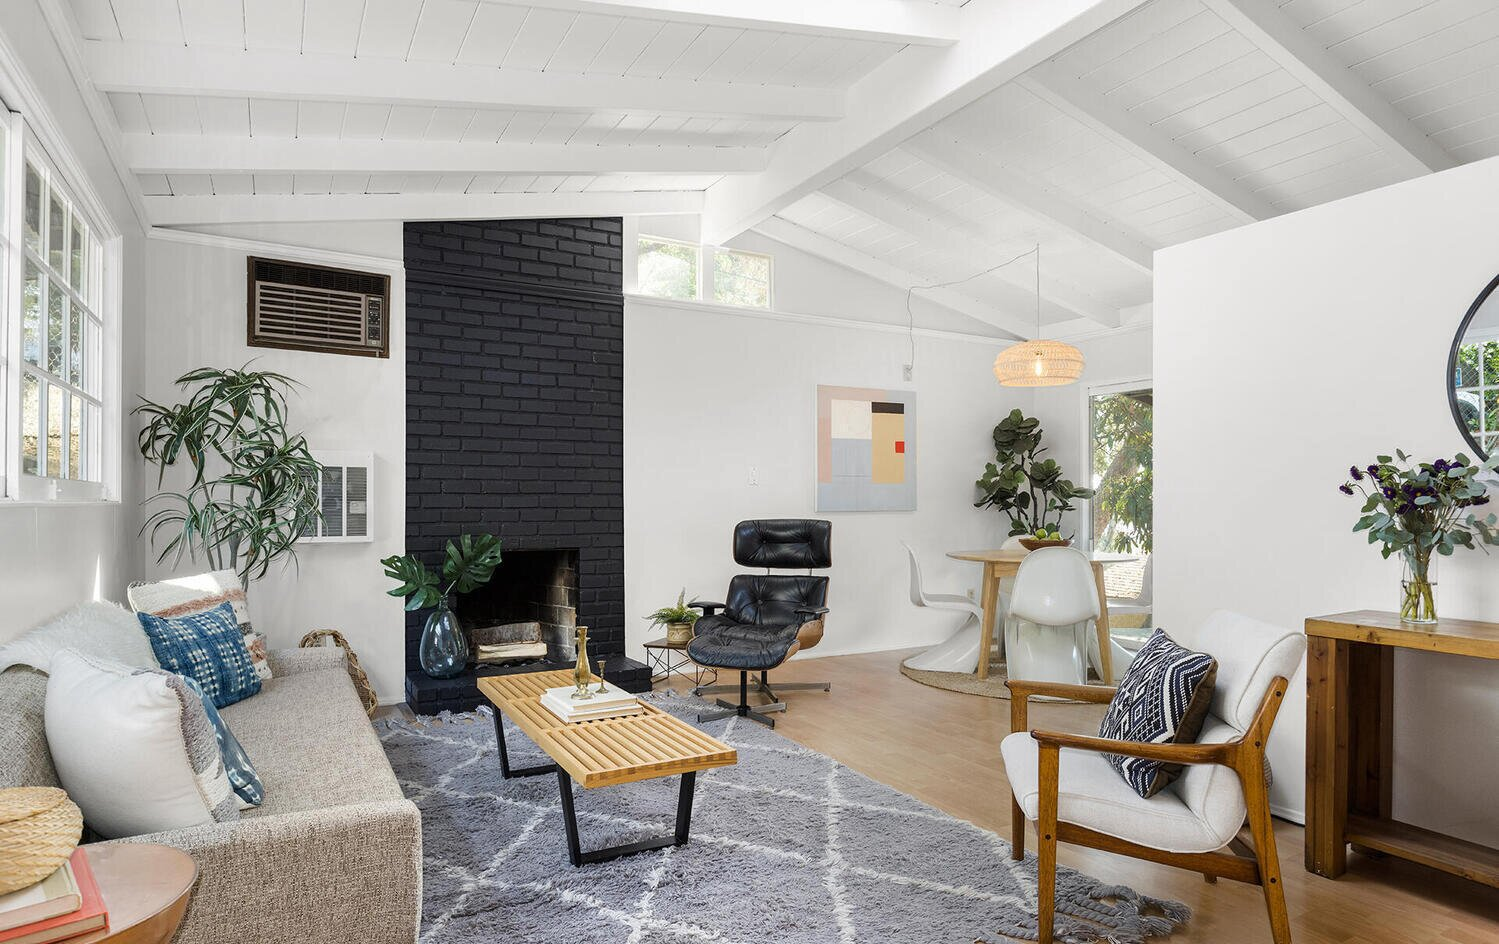 Photo 1 of 10 in A Charming Los Angeles Bungalow Asks $750K